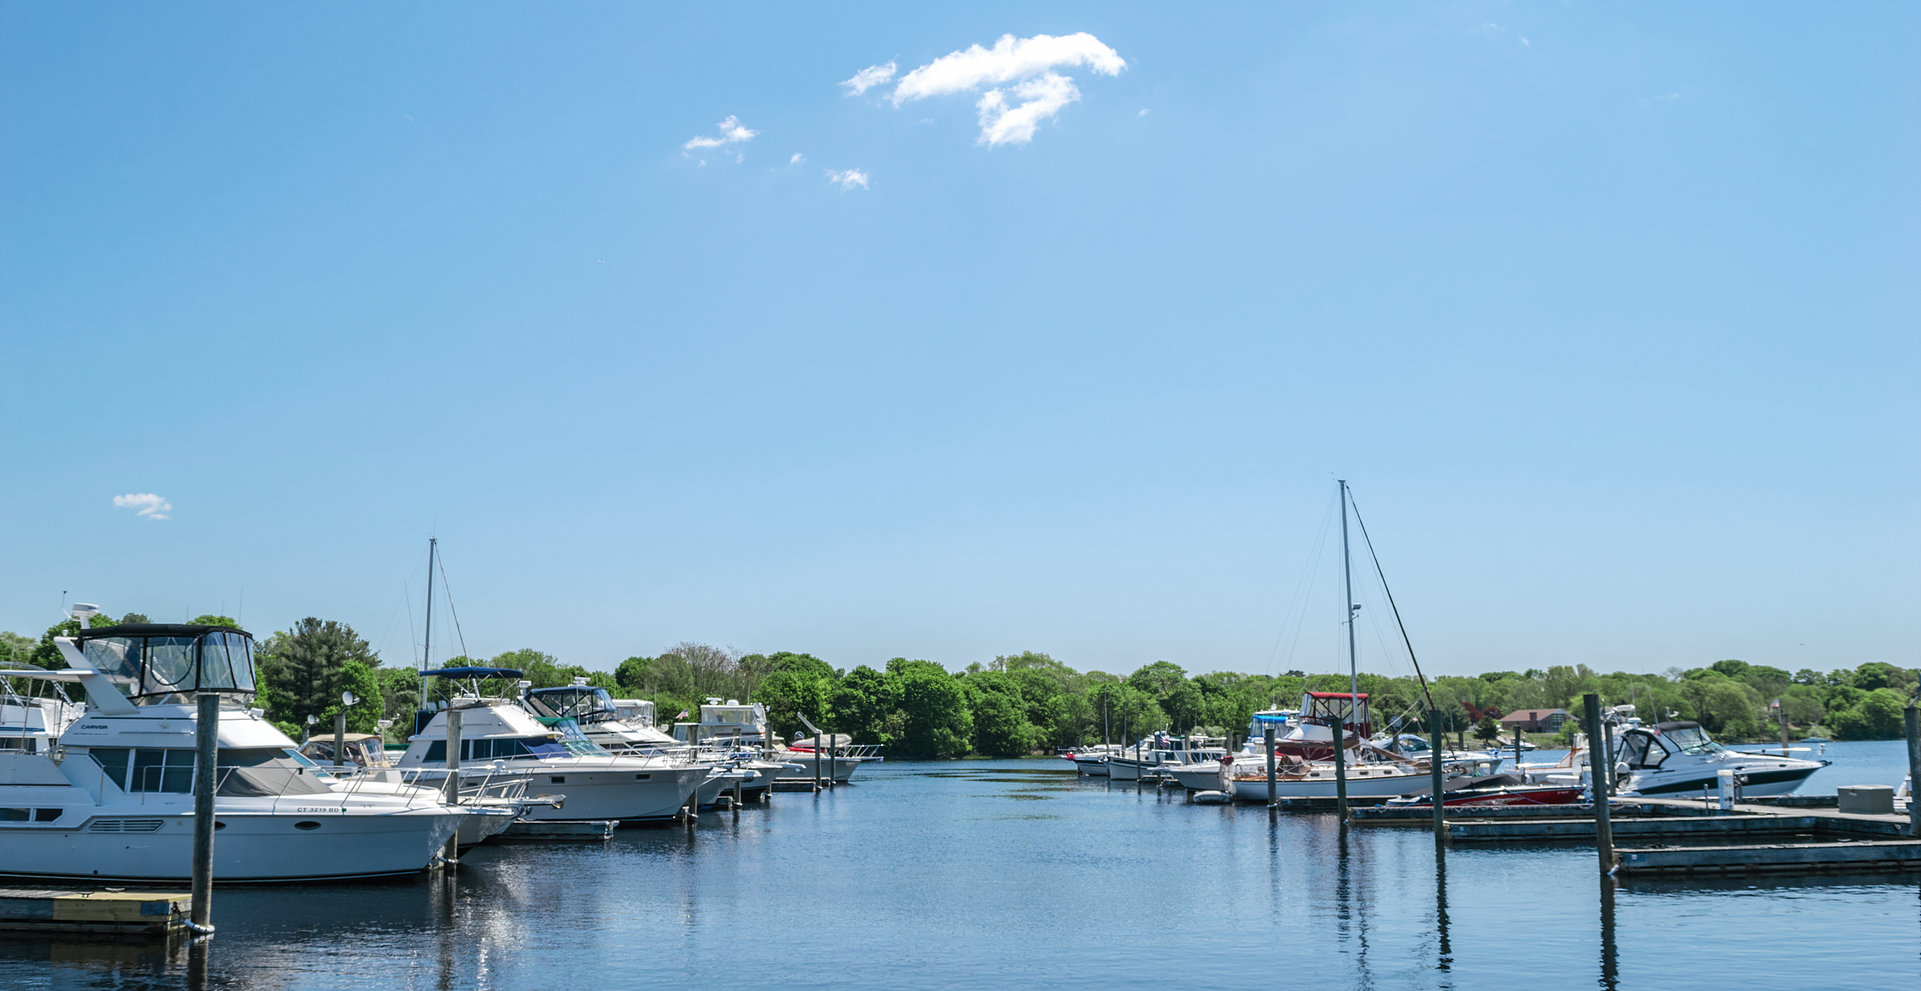 Norwest Marine in Pawcatuck, CT